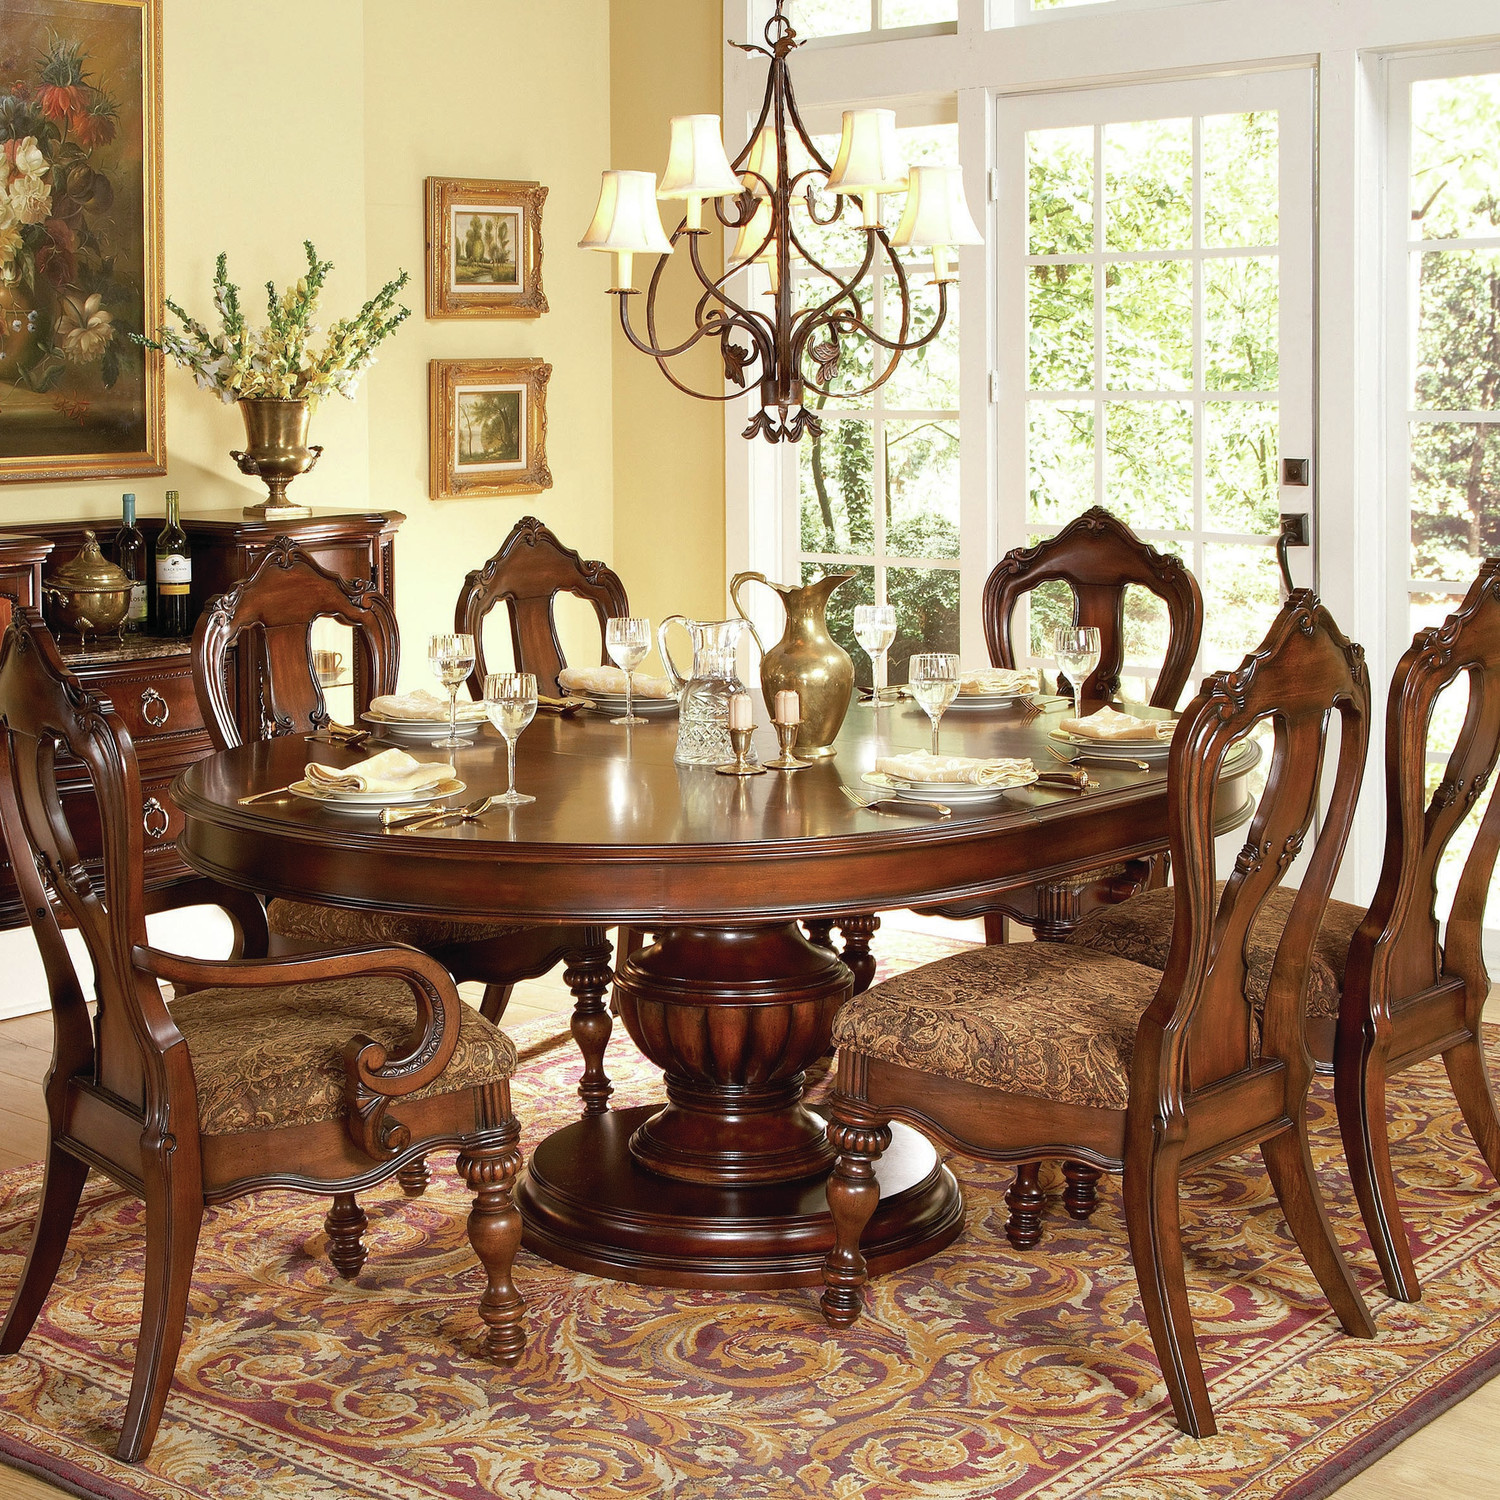 Getting a round dining room table for 6 by your own for Dining room table 2